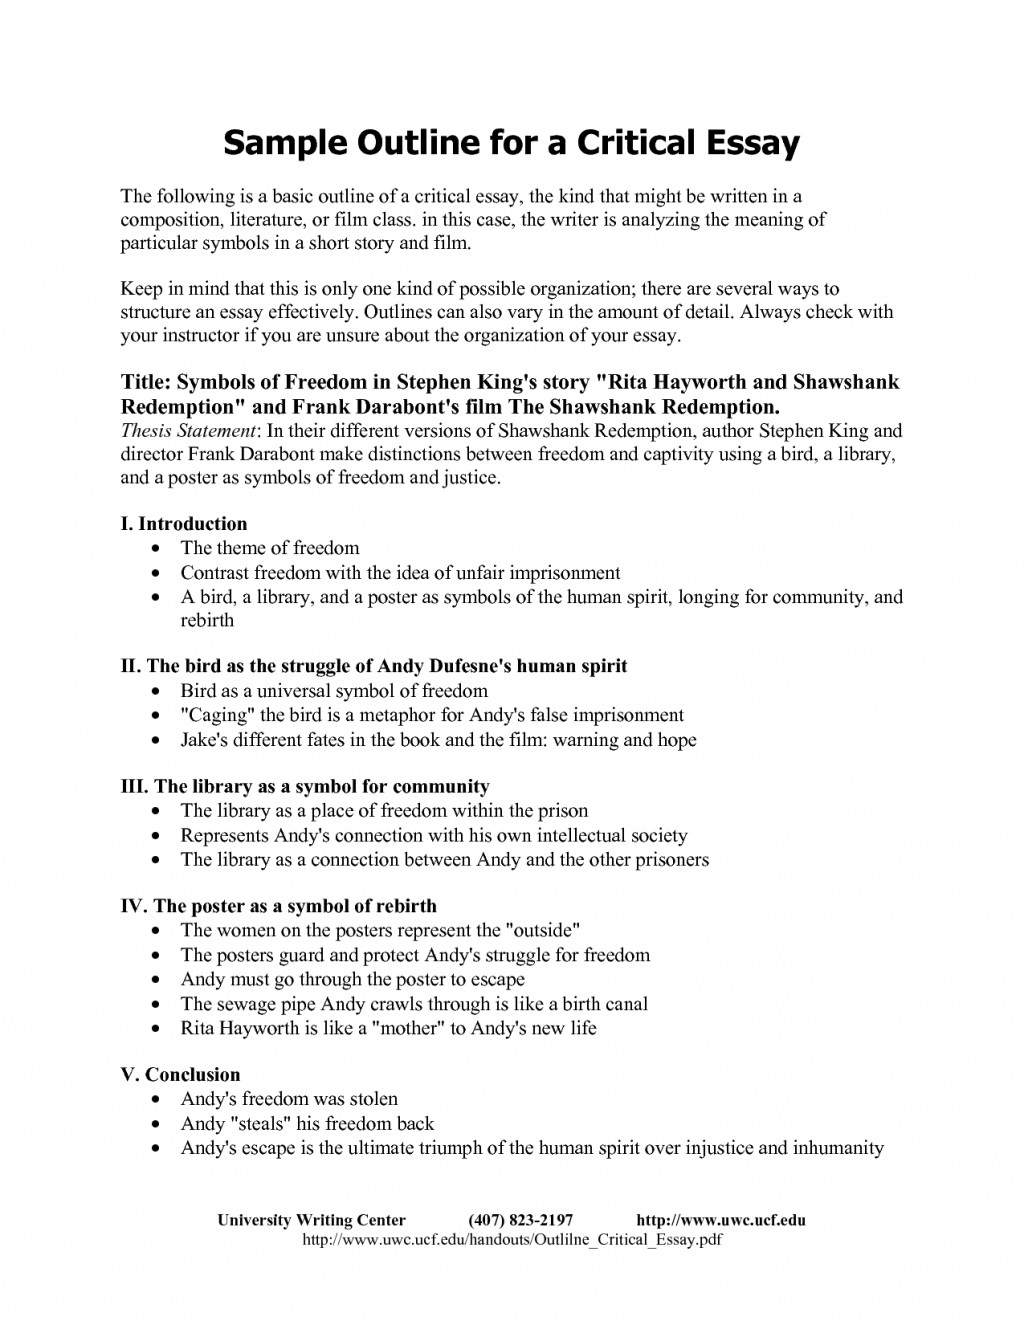 006 Literary Criticismy Example Bunch Ideas Of Critical Lens Gcse Examples How To Write Beautiful Sexual Orientation Discrimination Excellent Criticism Essay On The Great Gatsby Conclusion Sample Large